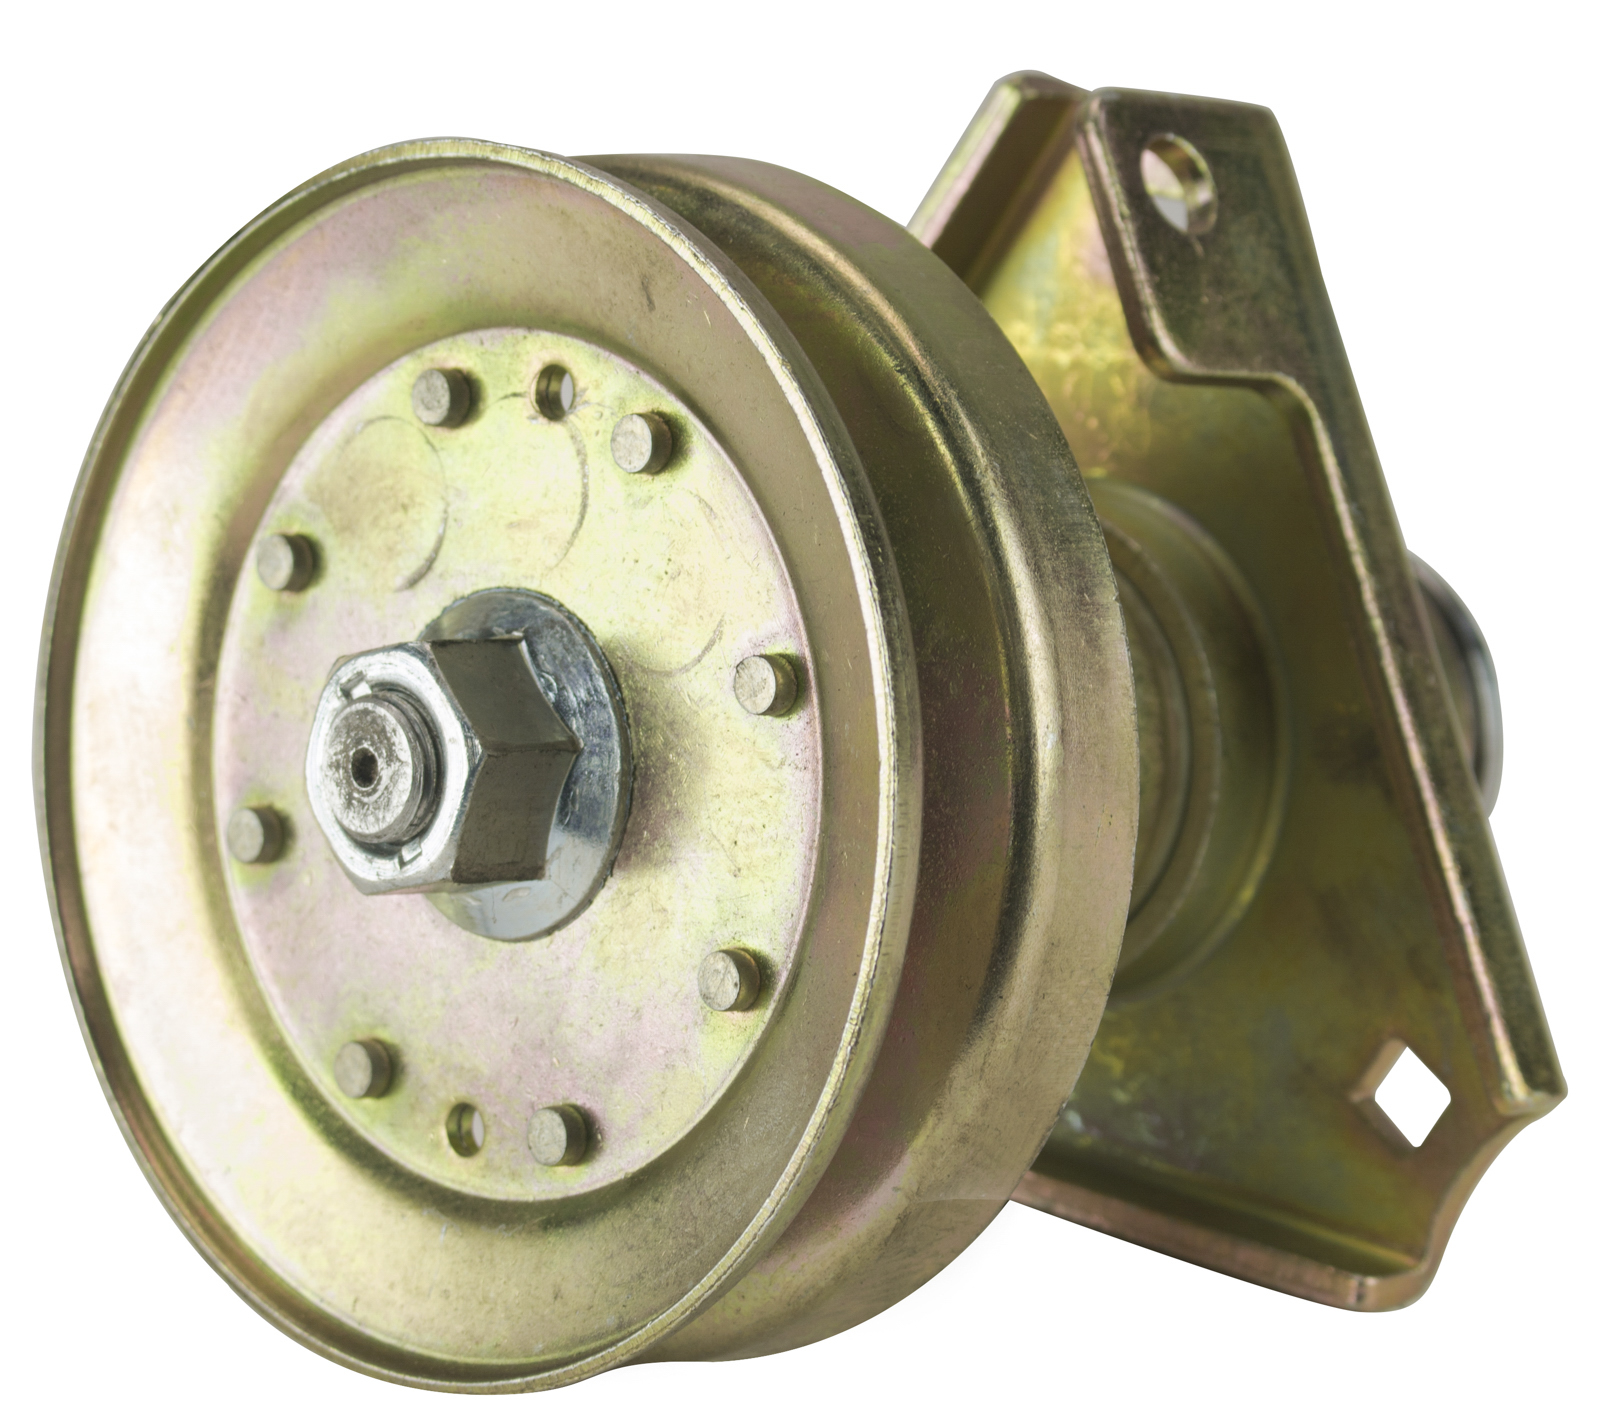 Erie Tools Lawn Mower Spindle Assembly fits John Deere AM126226 LT 160, LT 166, LT 180, Sabre Lawn Tractor by Erie Tools